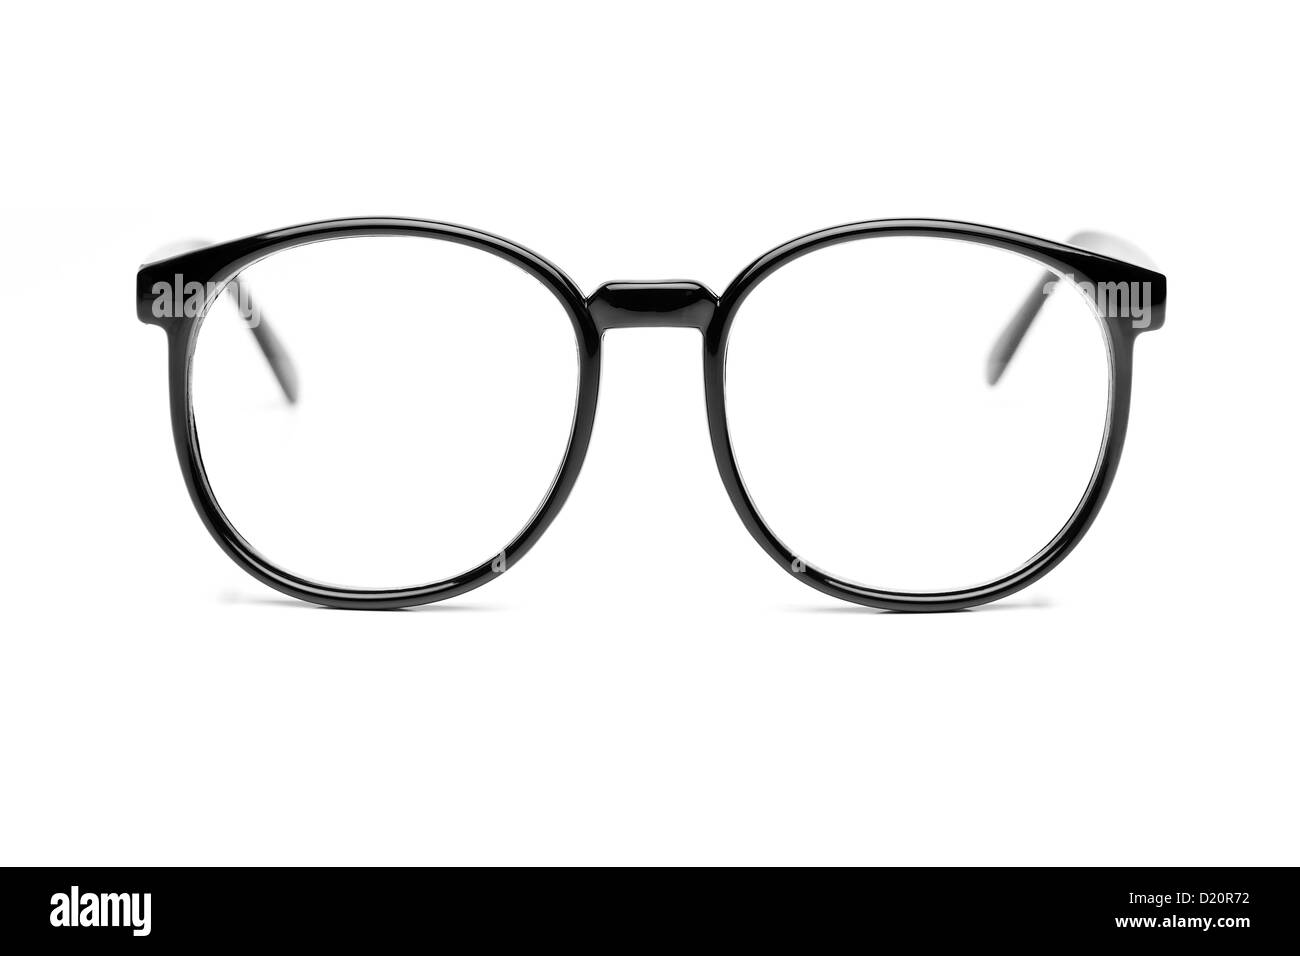 21b532e04e6 Round Glasses Stock Photos   Round Glasses Stock Images - Alamy